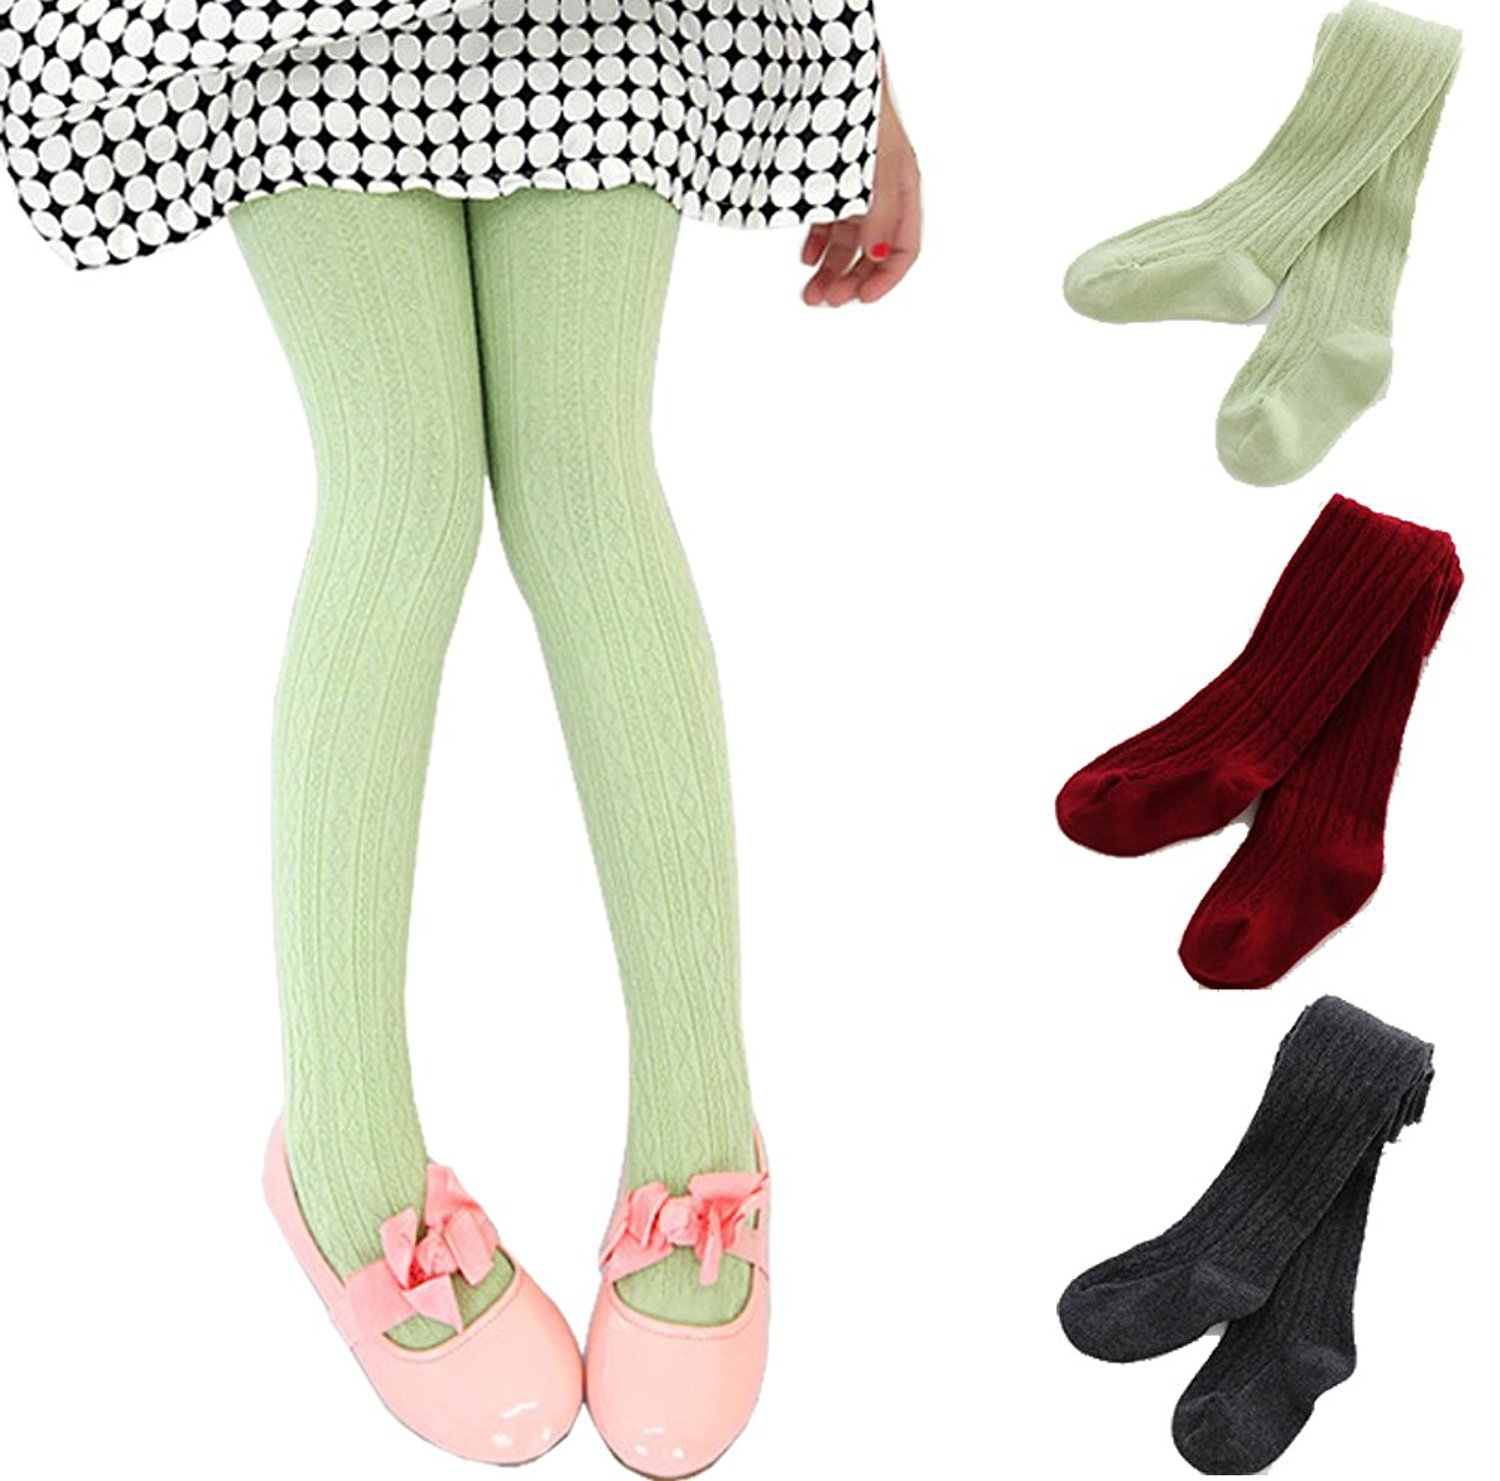 87c0e94523046 Get Quotations · 3 Pack Baby Toddler Girls Cable Knit Cotton Tights Footed  Leggings Pantyhose 2-10 Yrs